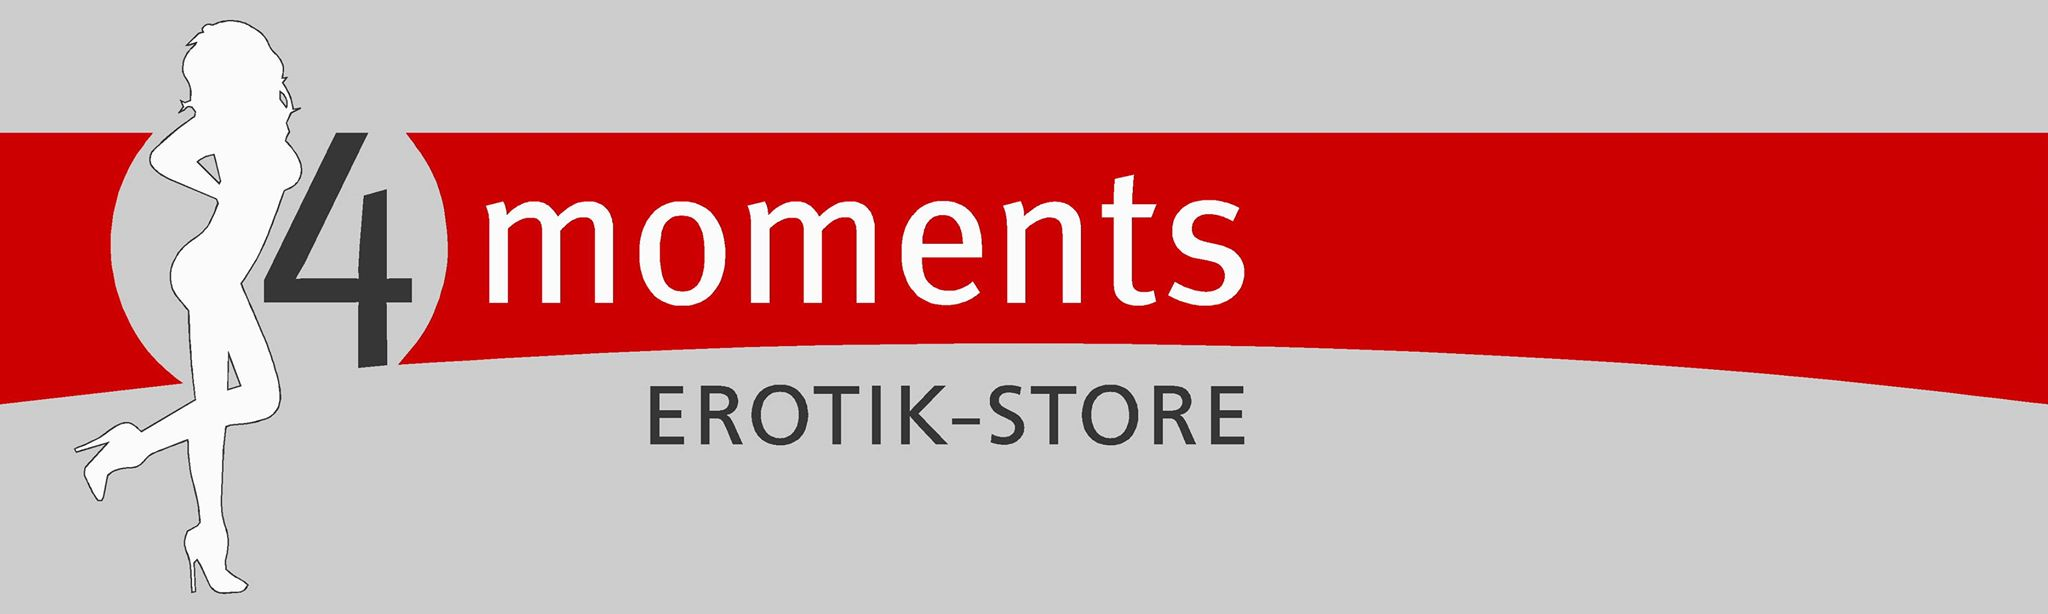 Logo von 4moments